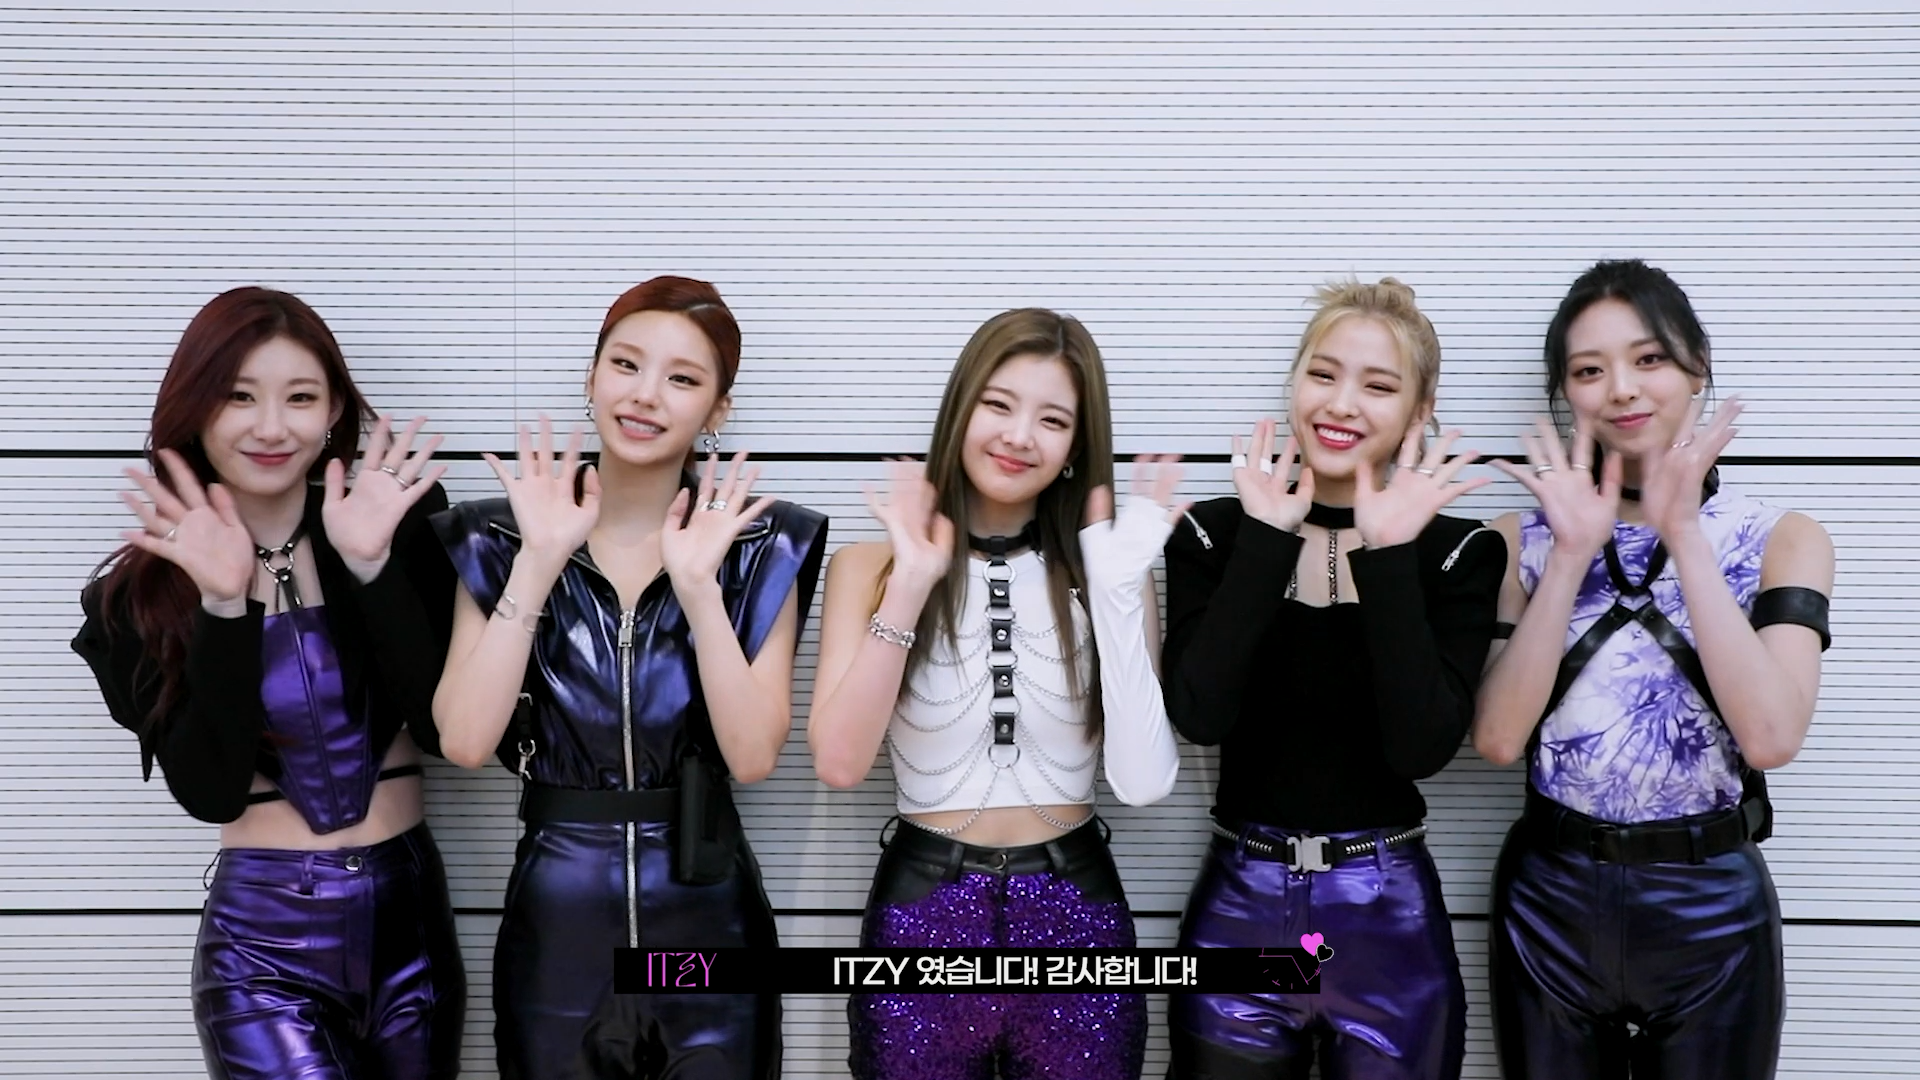 """ITZY(있지) """"마.피.아. In the morning (English Ver.)"""" Greetings - ENG"""